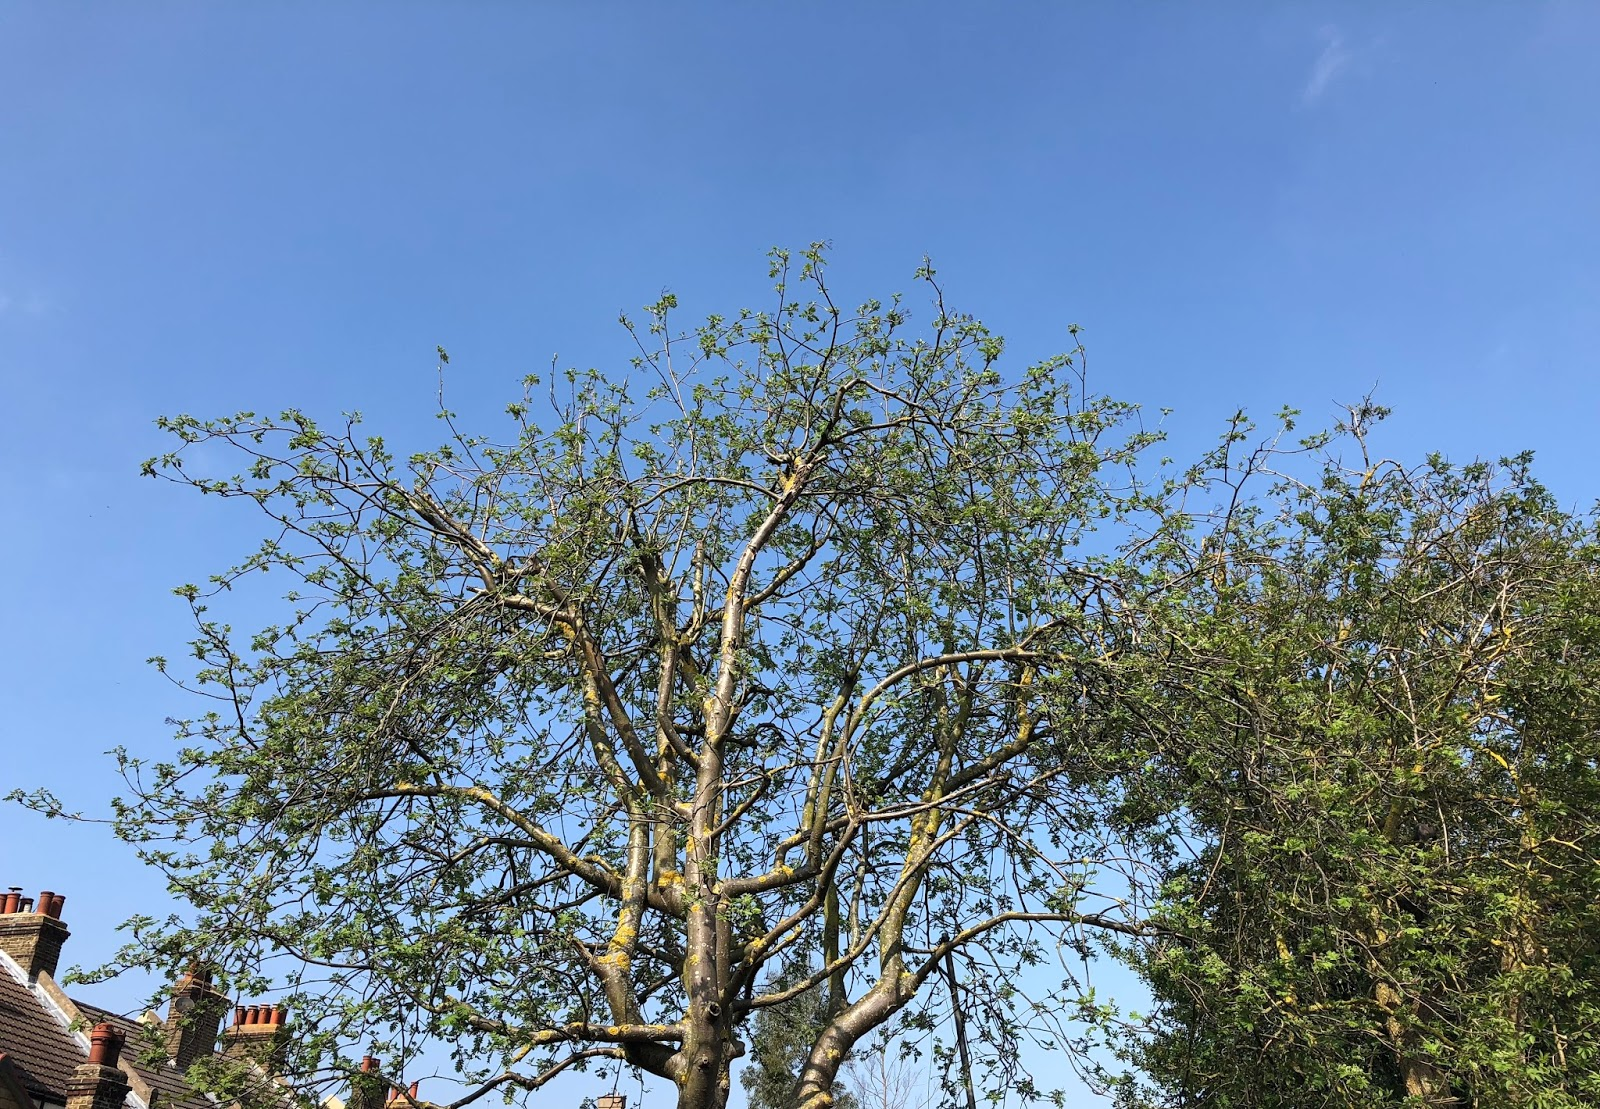 Blue sky and tree branches